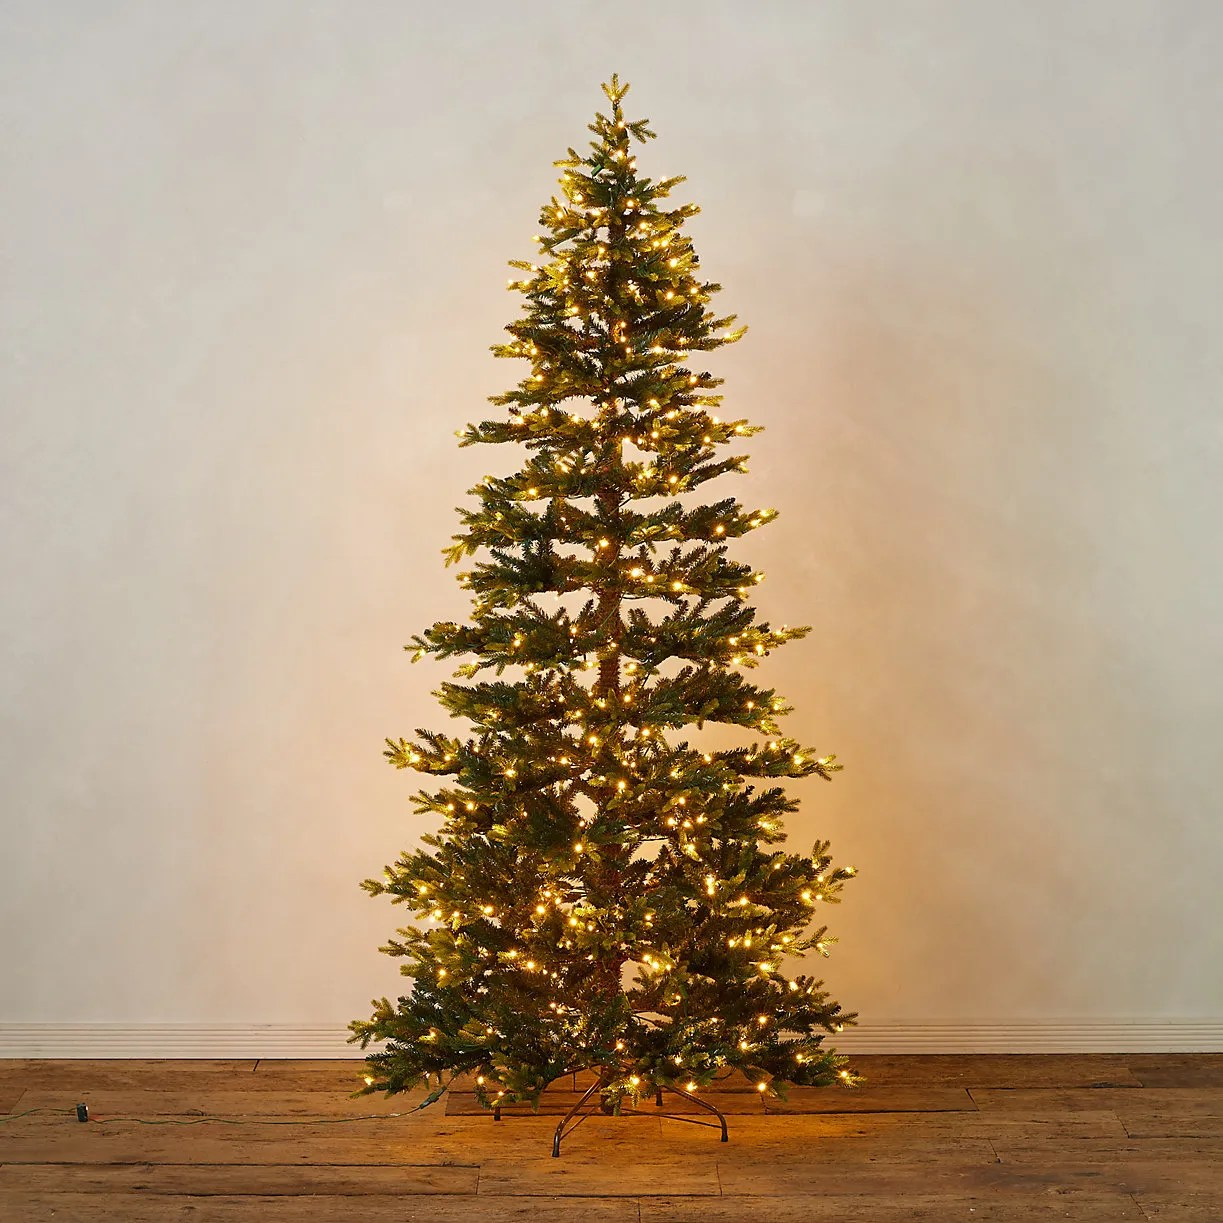 Christmas Tree Stand For Sale The 5 Best Artificial Christmas Trees And 5 Ways To Make Them